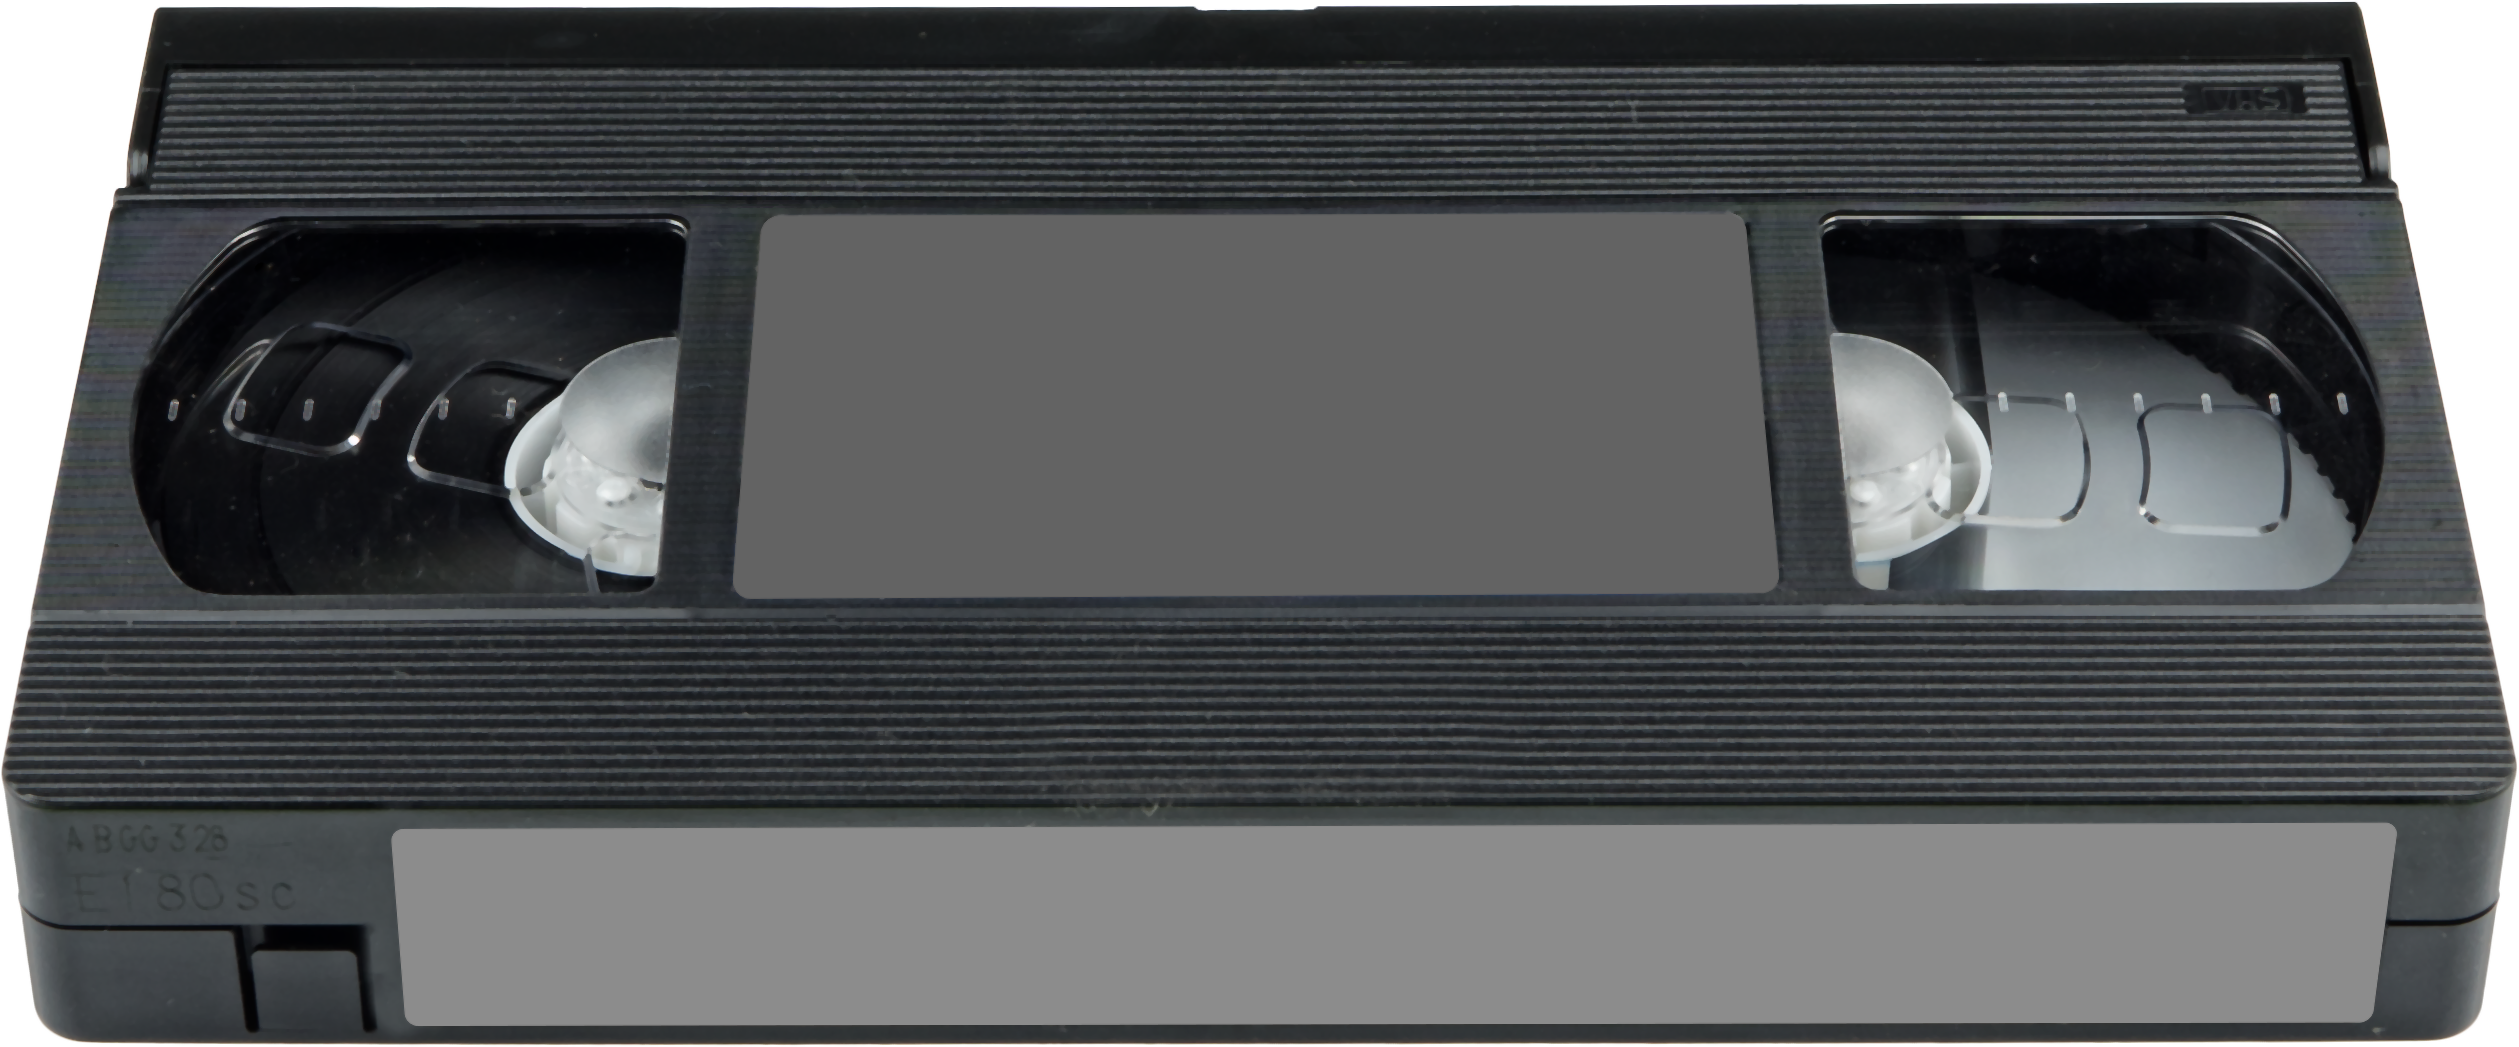 Vhs Tape PNG - 54647